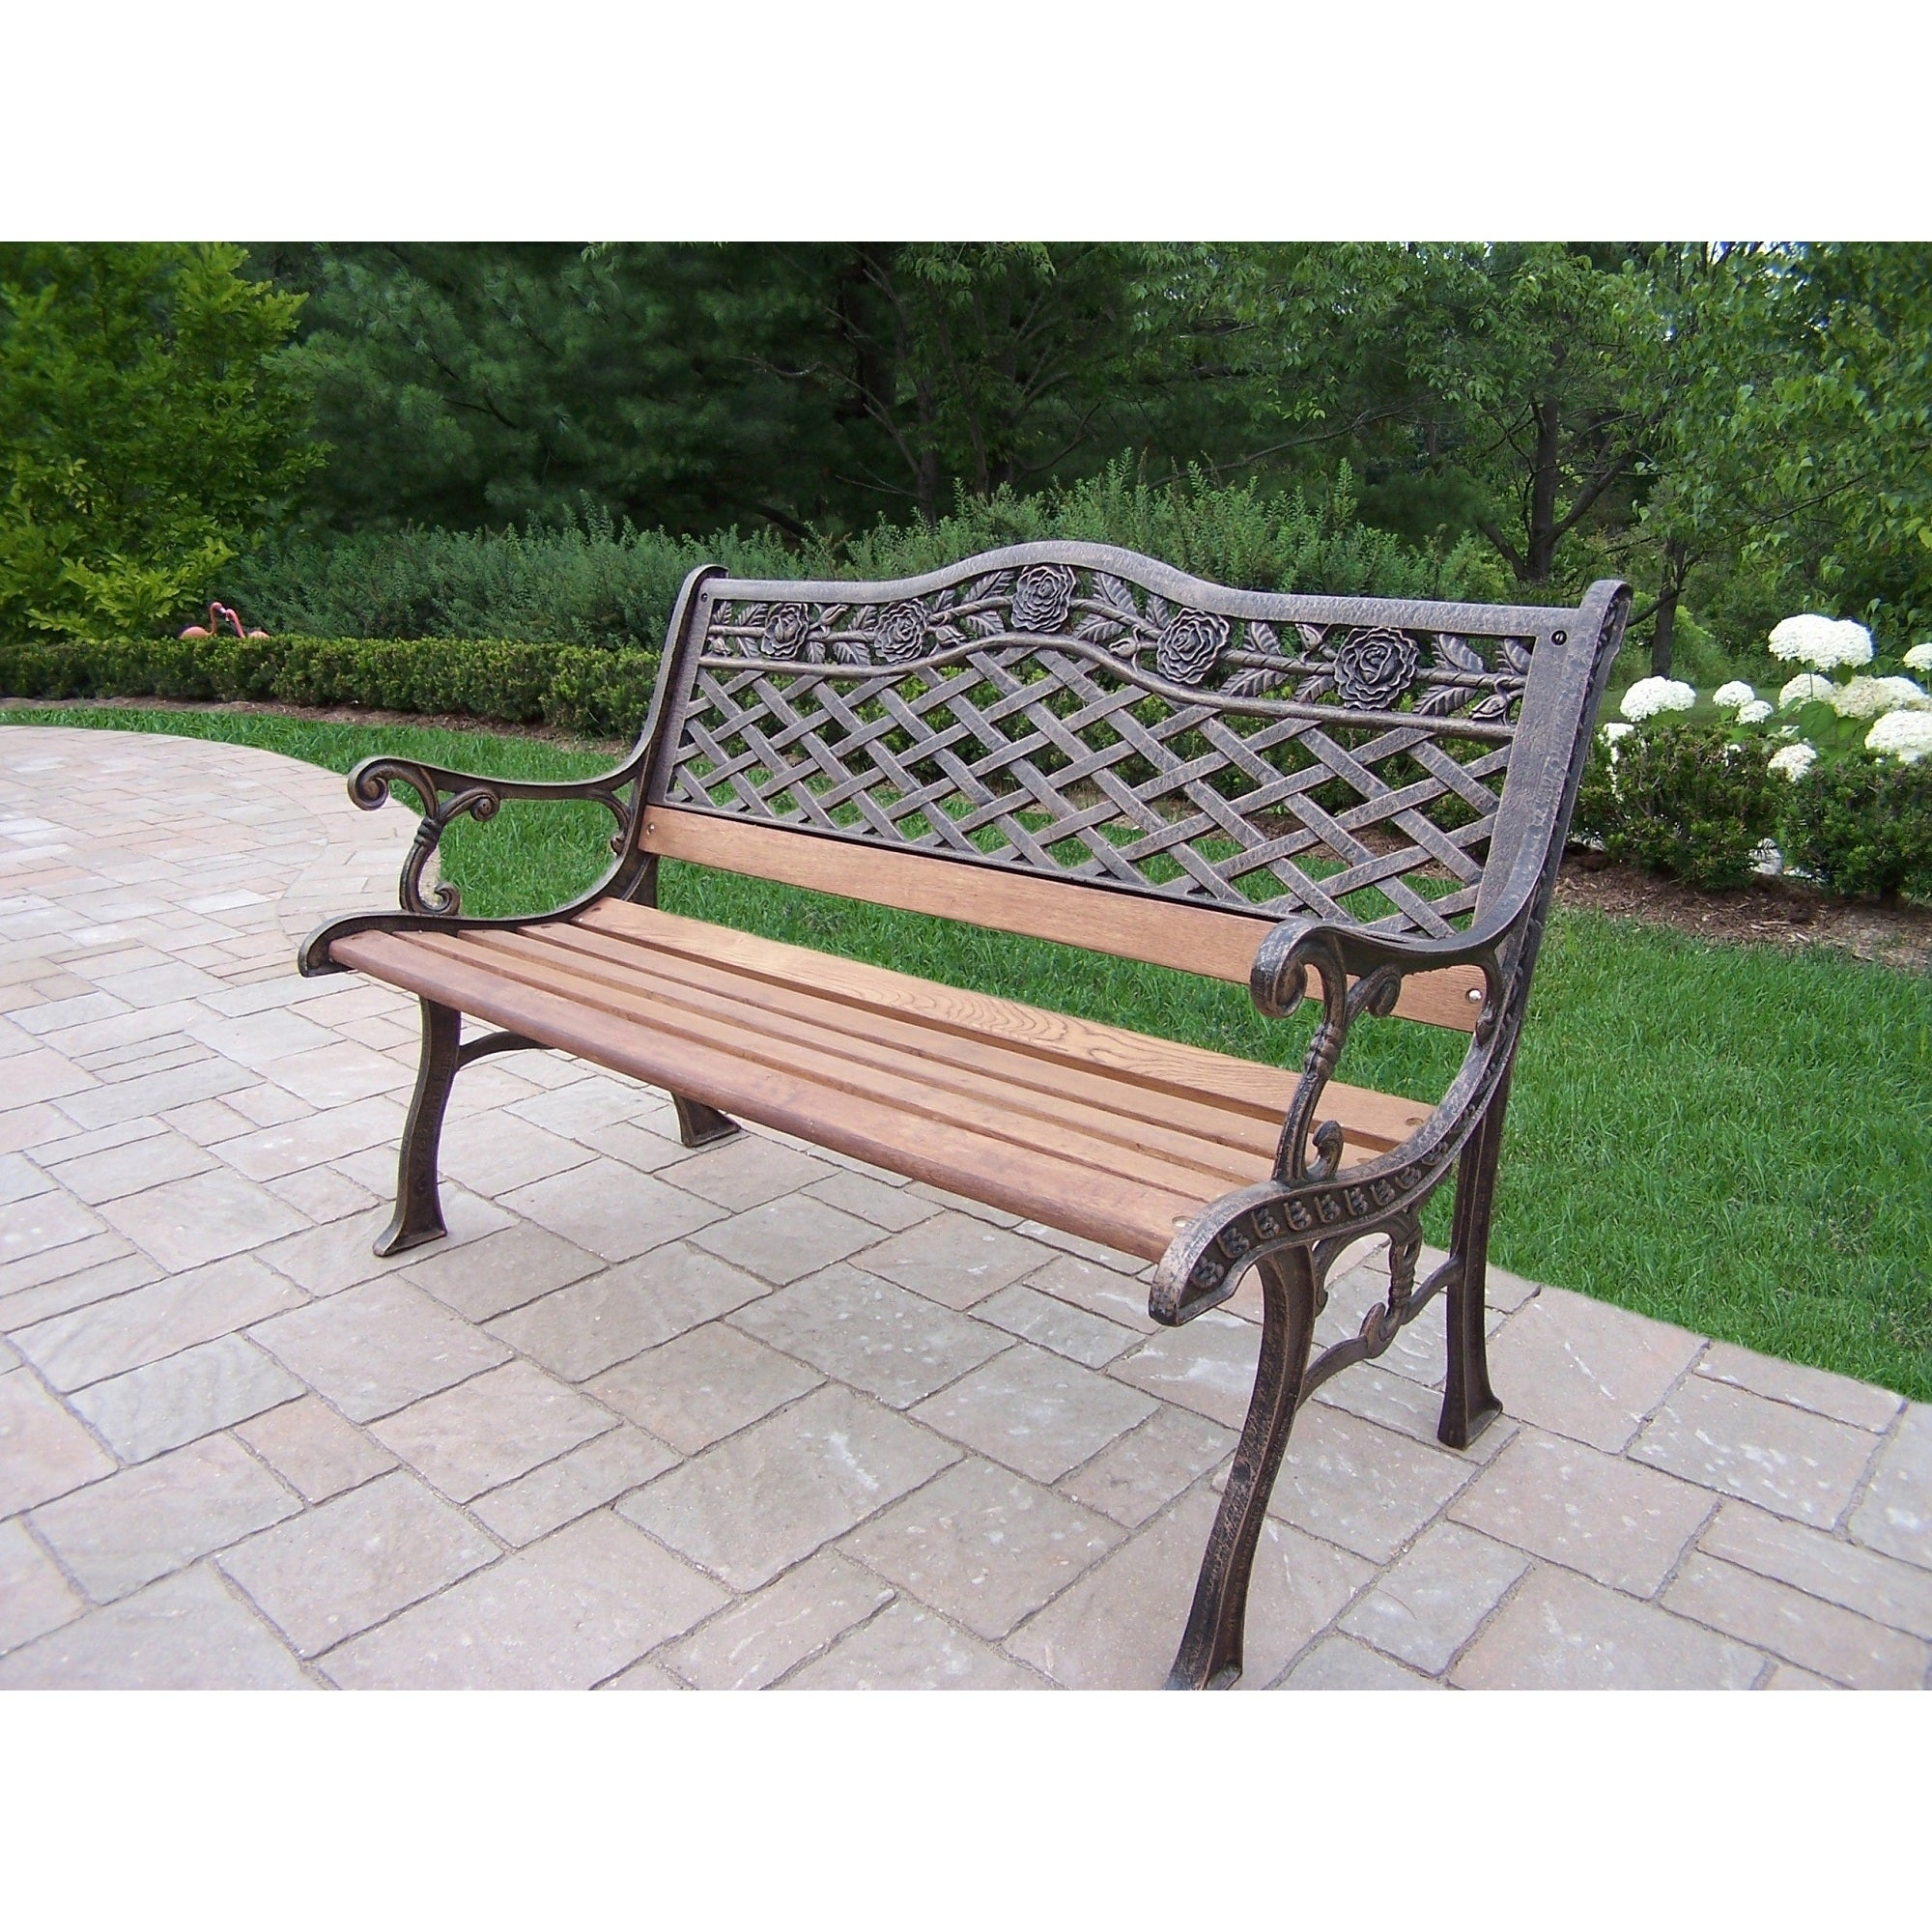 Shop oakland living corporation dakota sun cast aluminum and wrought iron bench free shipping today overstock com 12140015